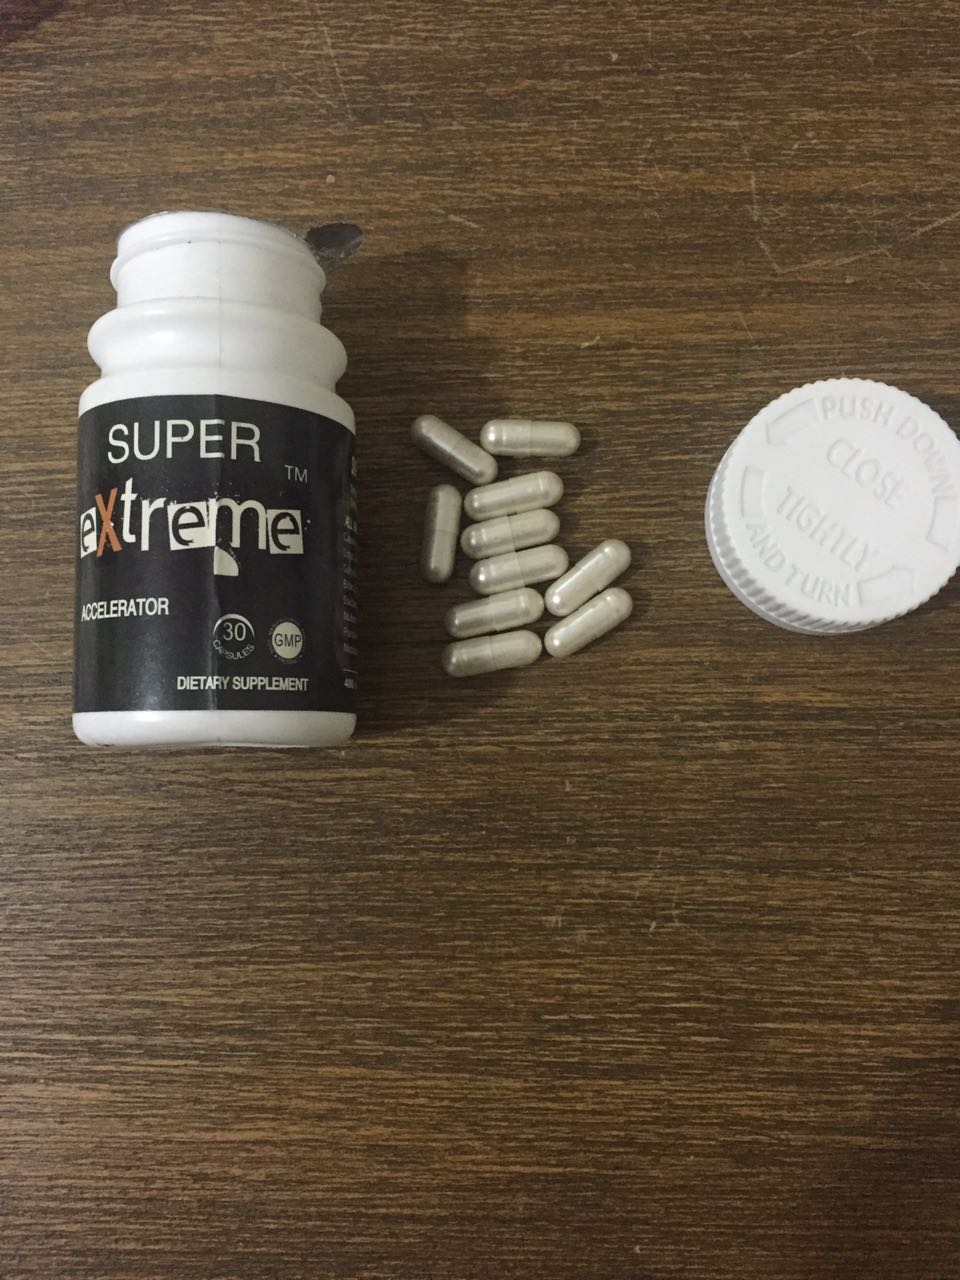 Original Weight Loss Super Extreme Slimming Capsules